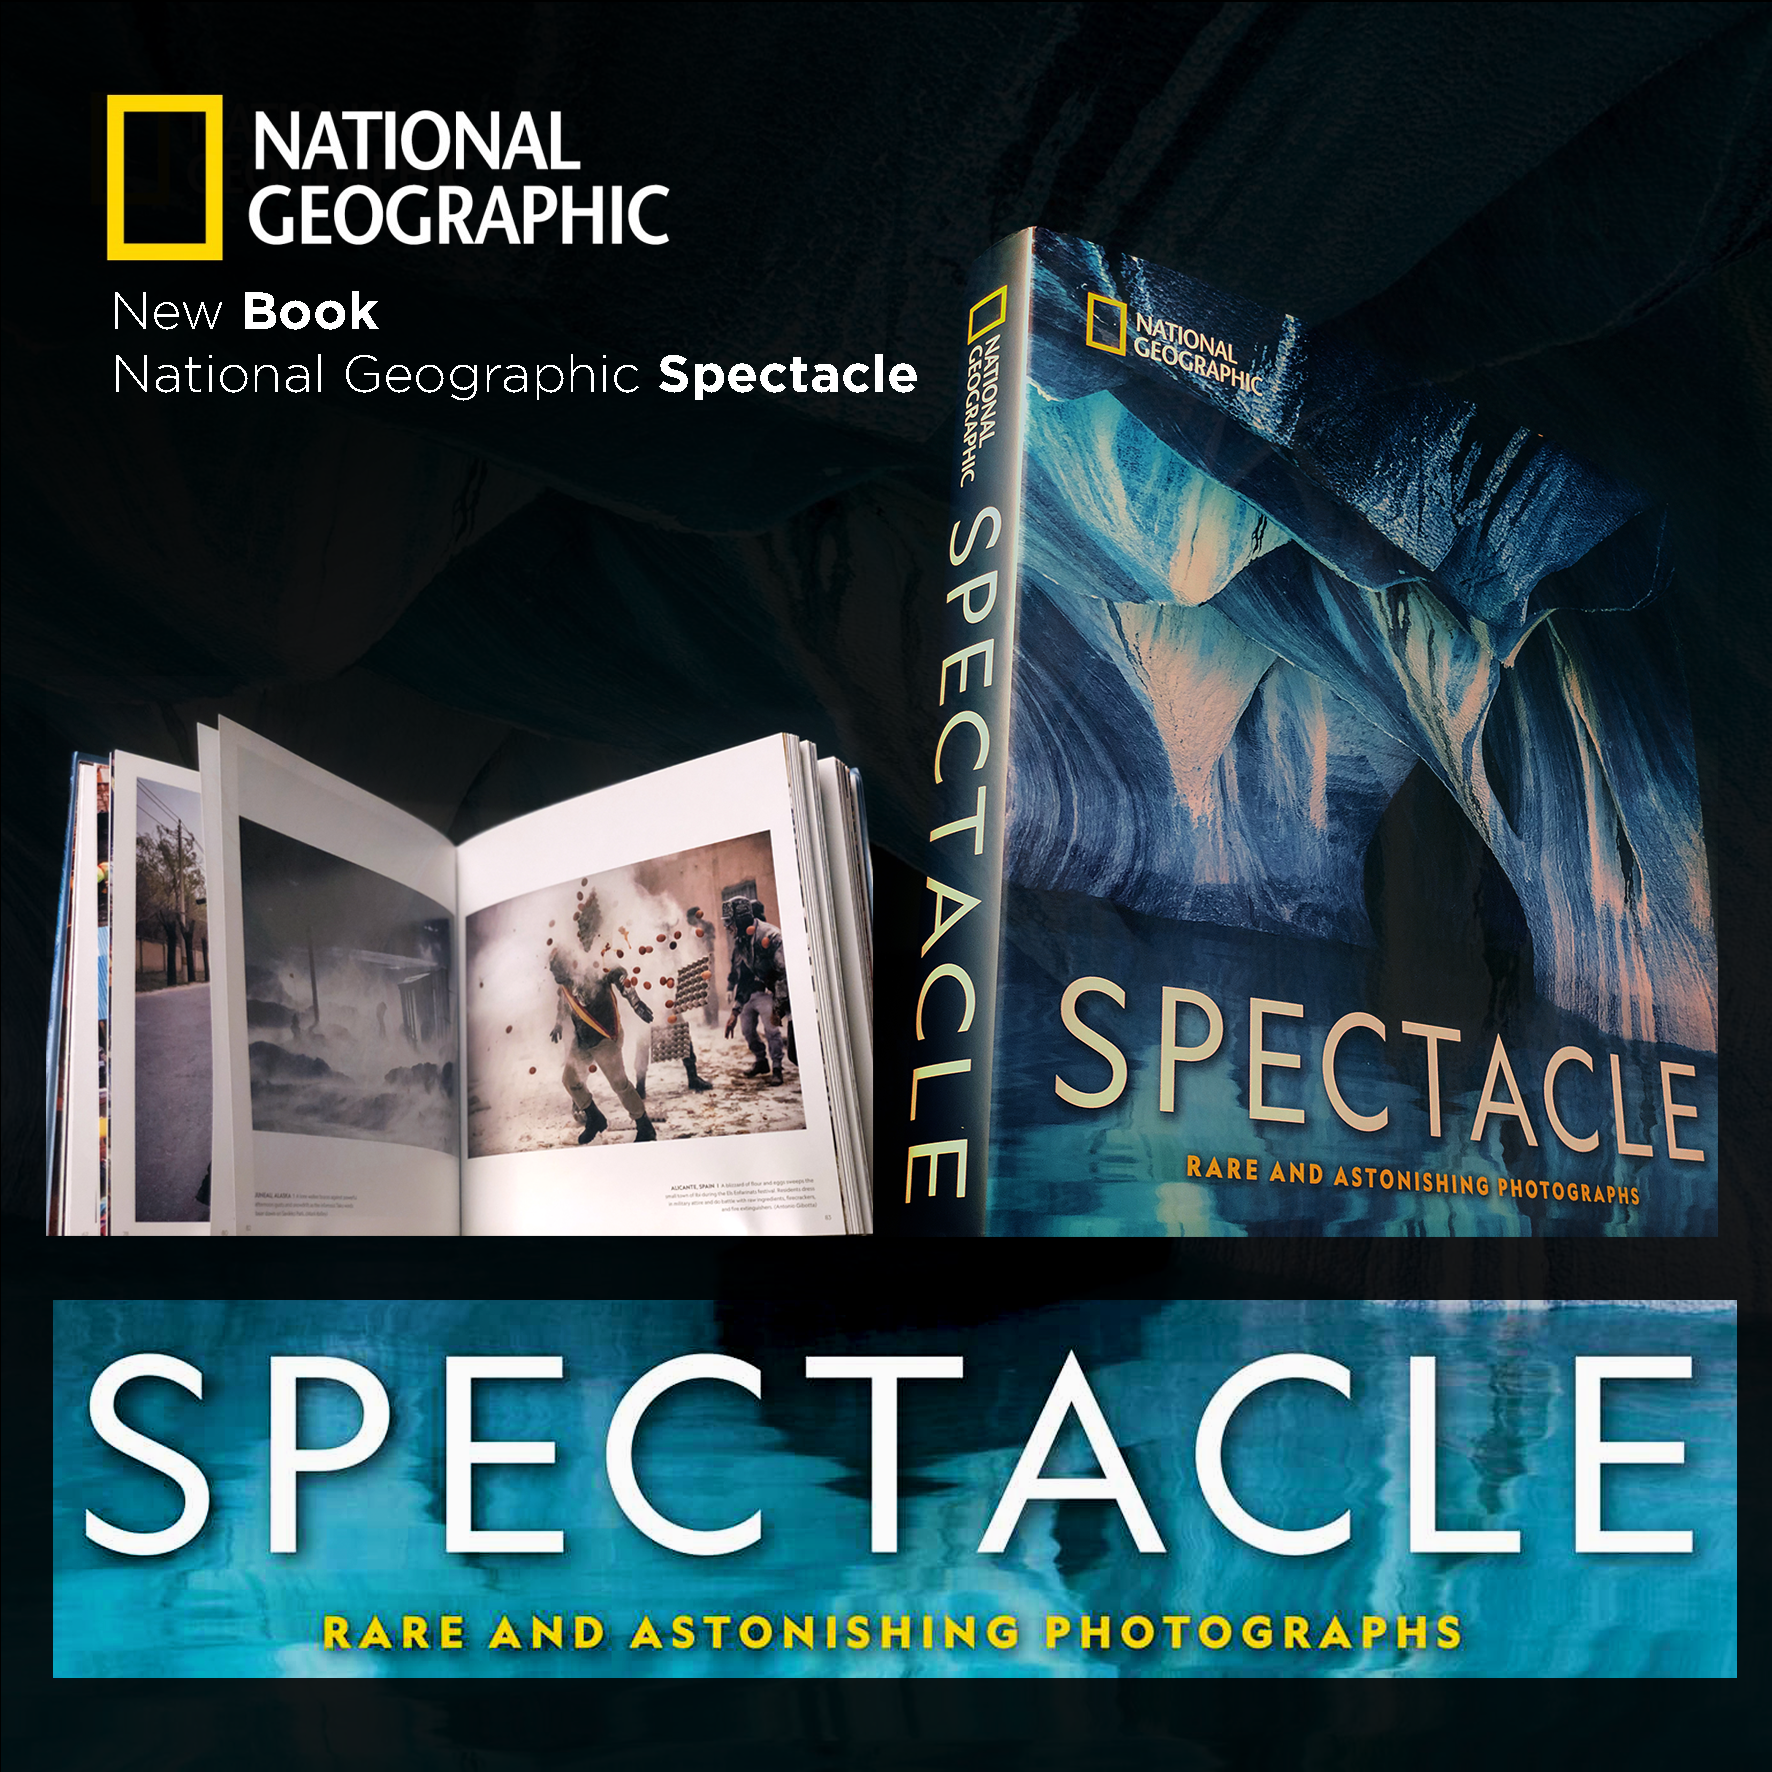 National Geographic Spectacle